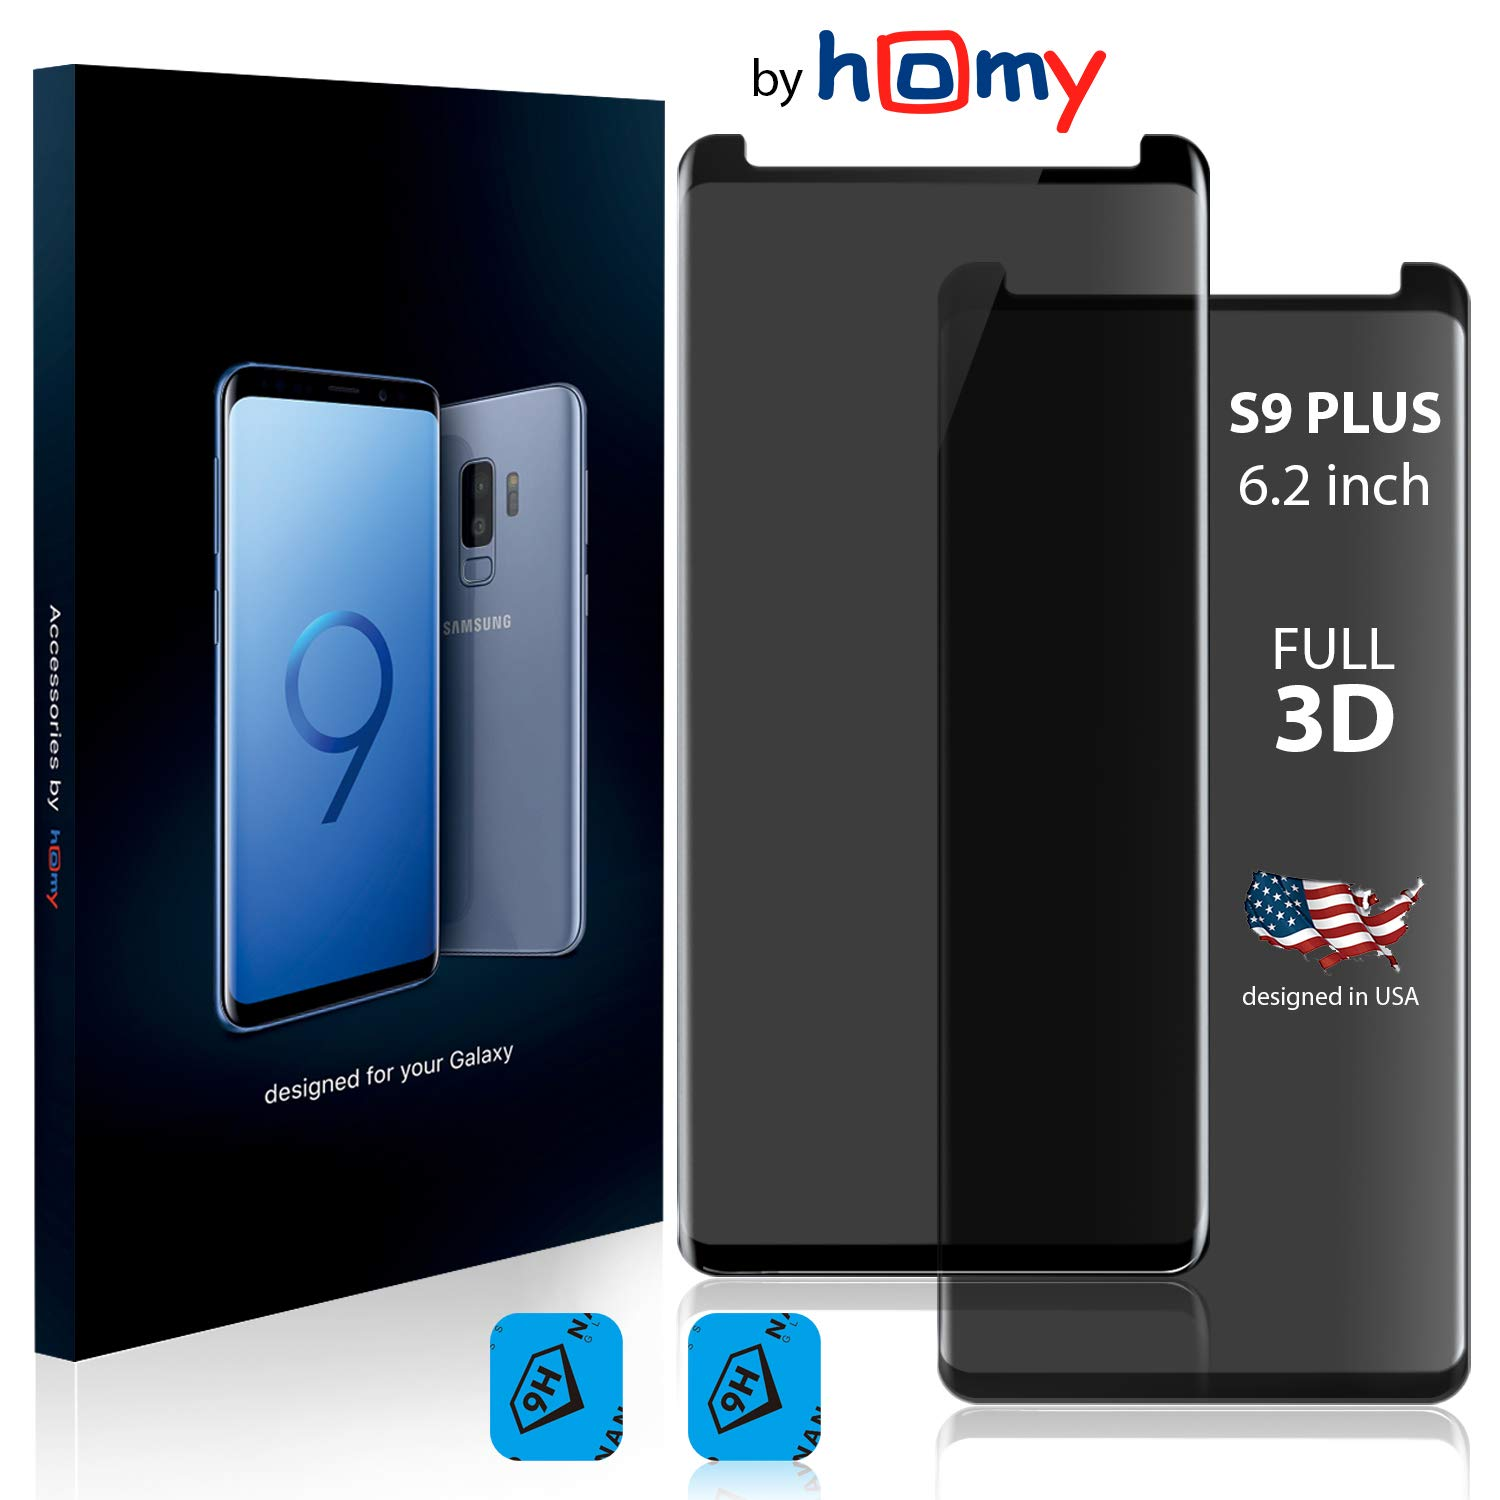 Homy Compatible Privacy UHD Screen Protector Samsung Galaxy S9 Plus 6.2 inch [2-Pack] - Free Camera Lens Cover. Anti Spy Filter Made 9H Curved 3D High Clarity Full Cover Japanese Tempered Glass Homy international